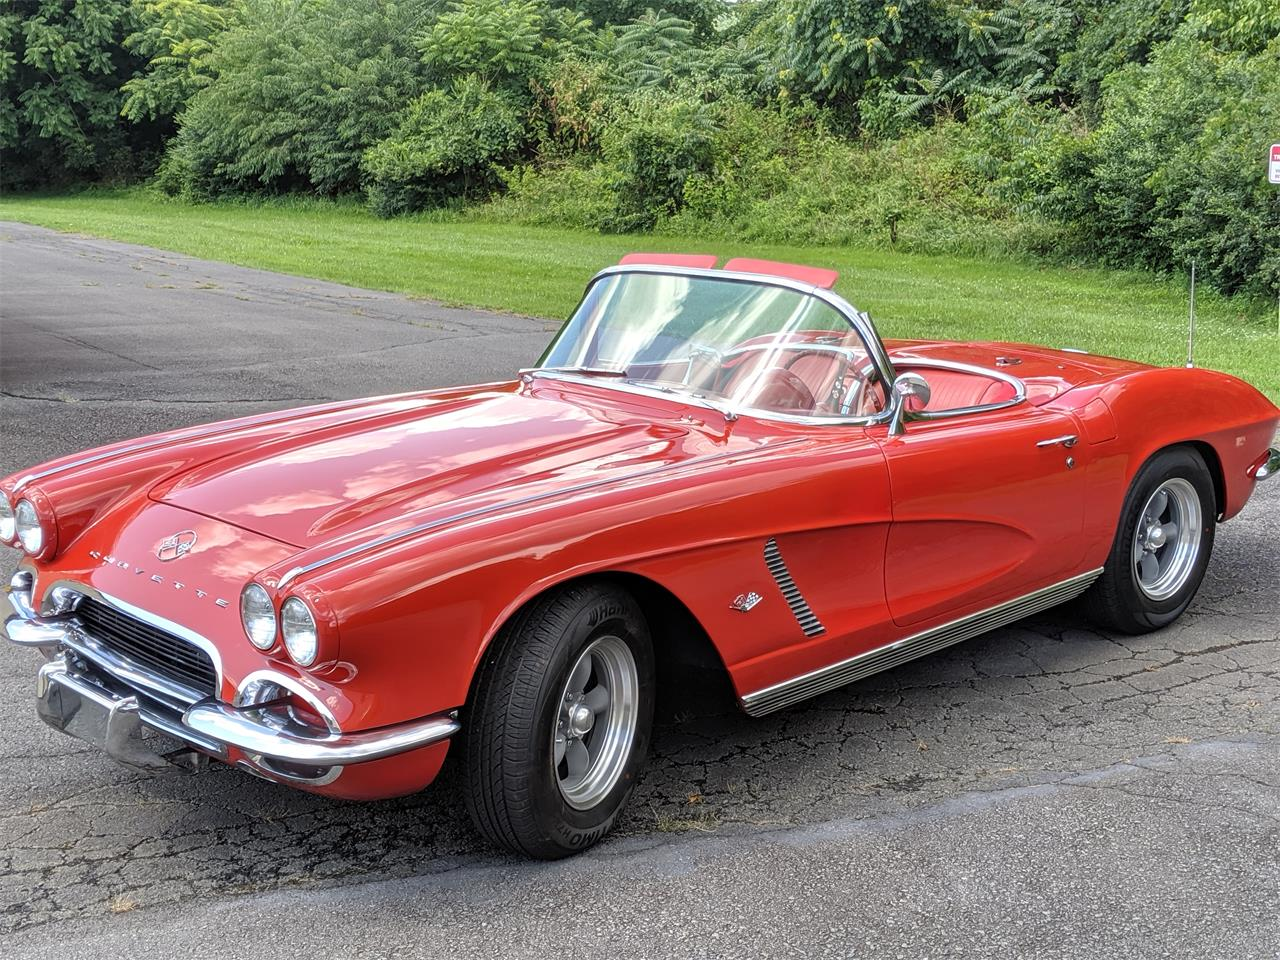 Large Picture of '62 Chevrolet Corvette - $62,500.00 Offered by a Private Seller - QL7V